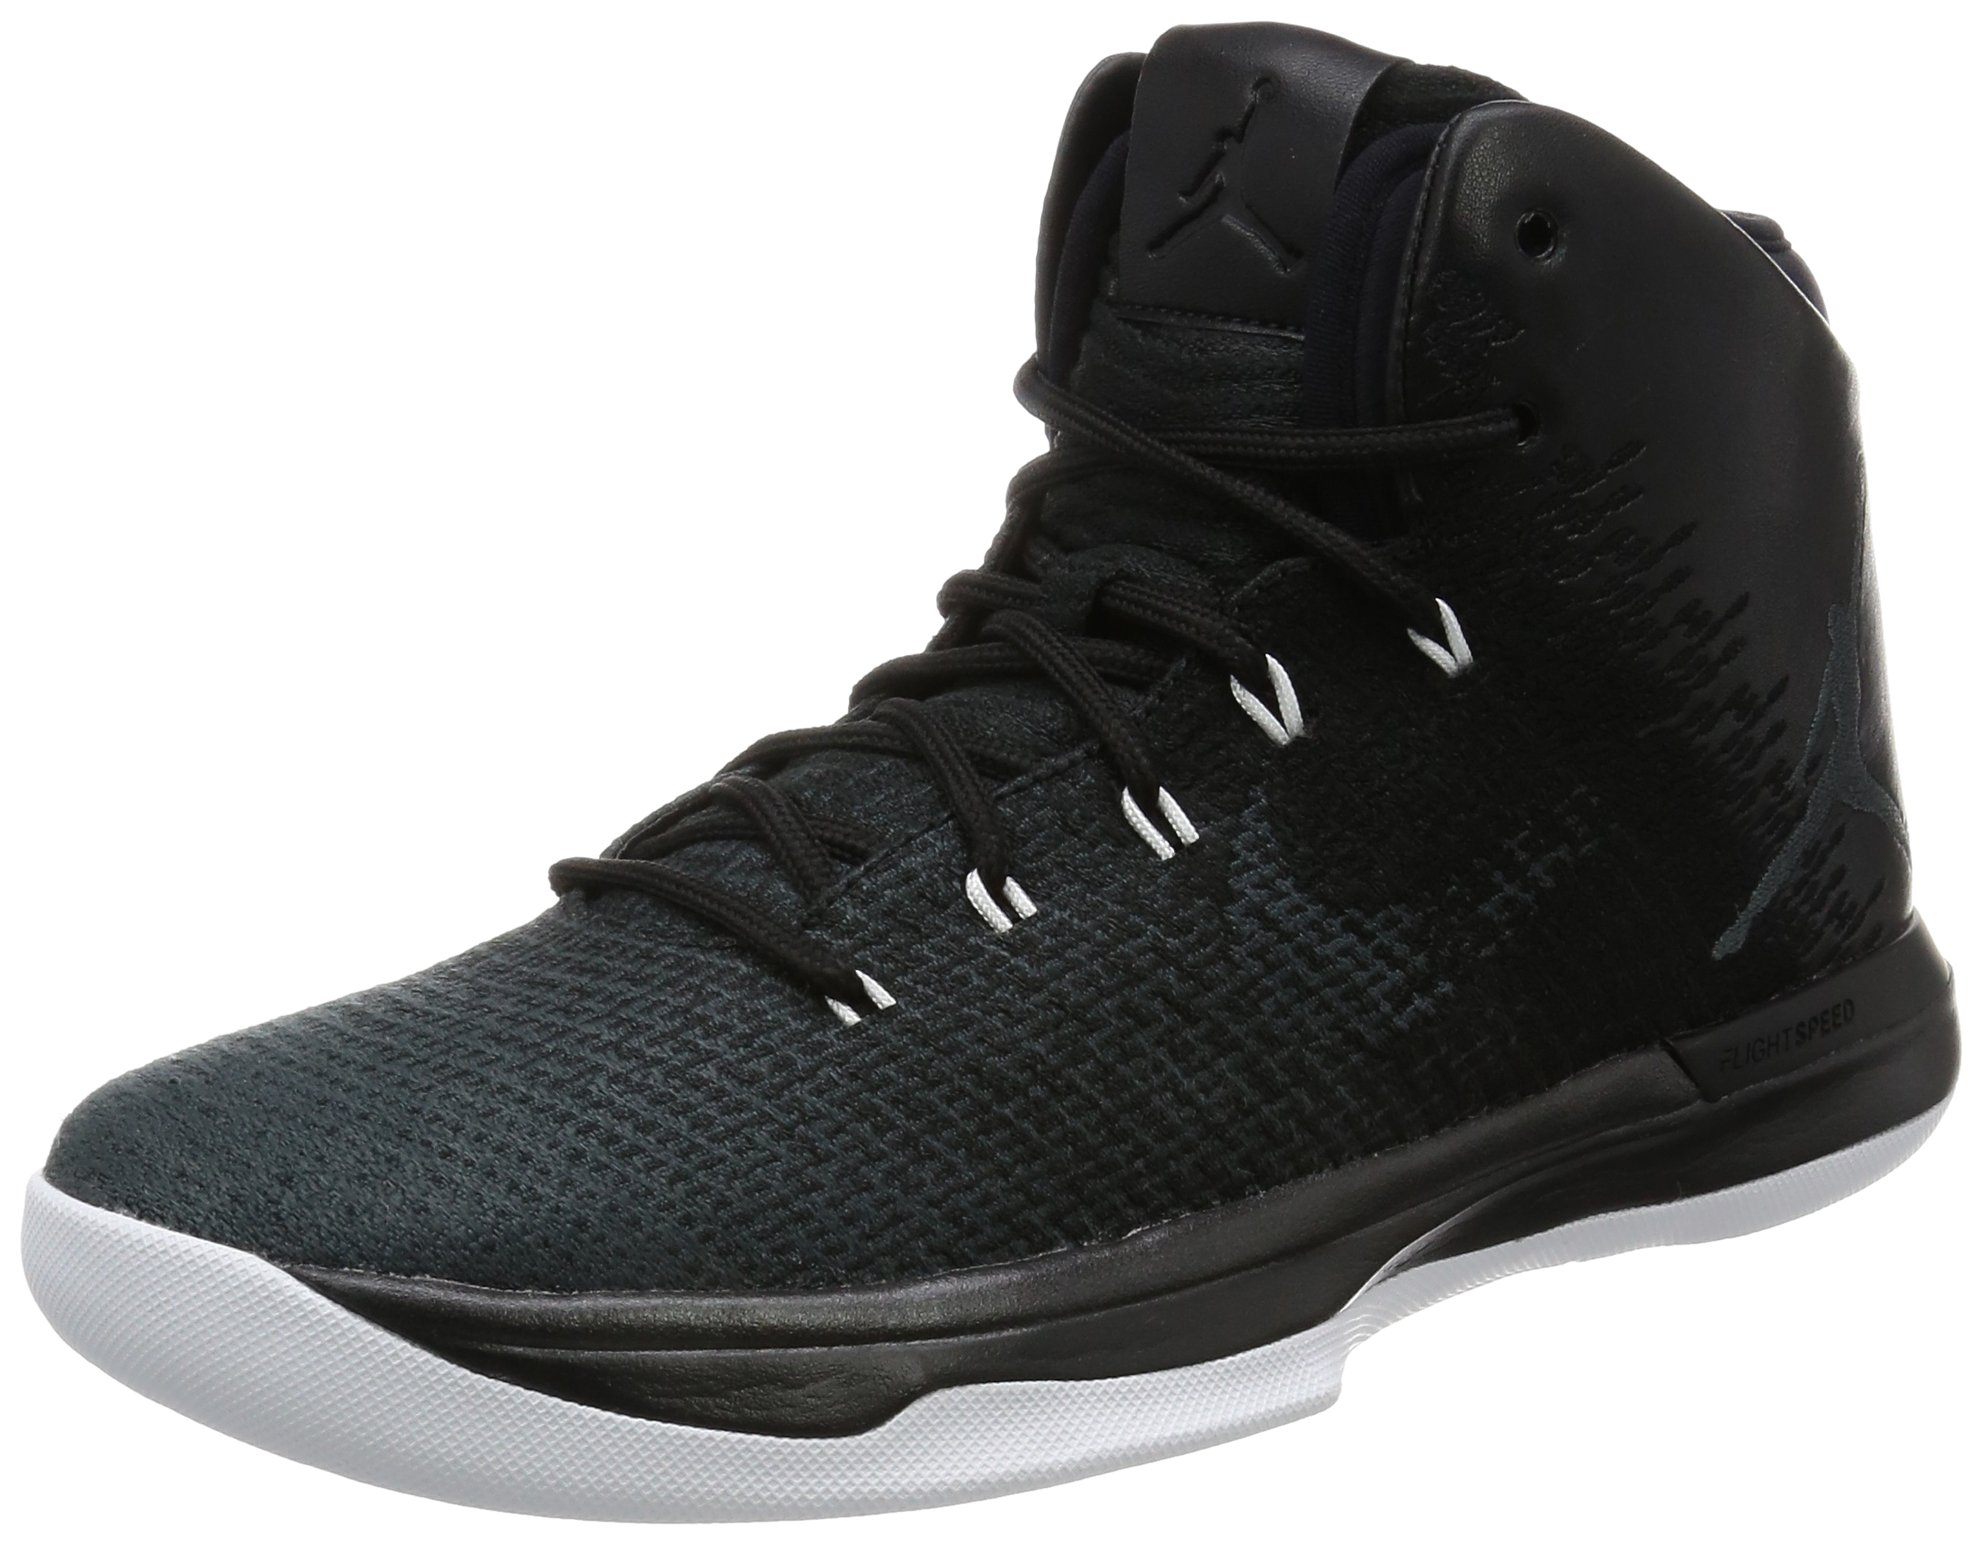 Jordan Mens Air XXXI, Black/Anthracite-White, 9.5 M US